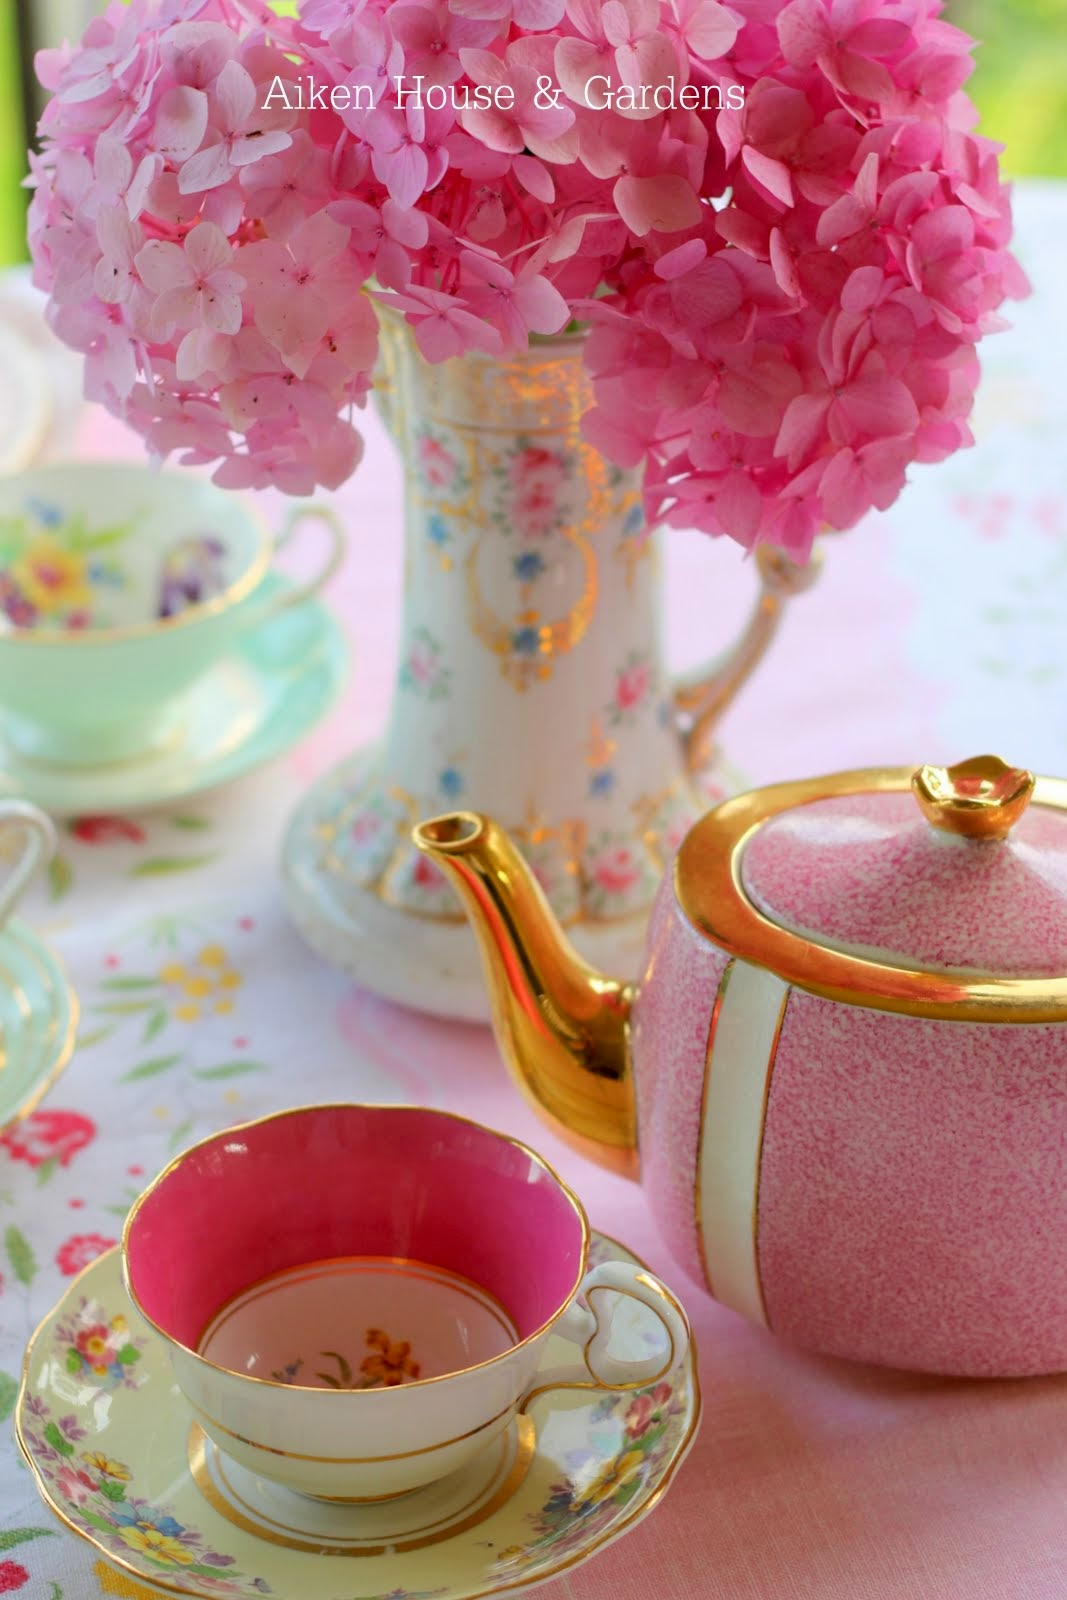 Preparing For The Vintage Tea Party